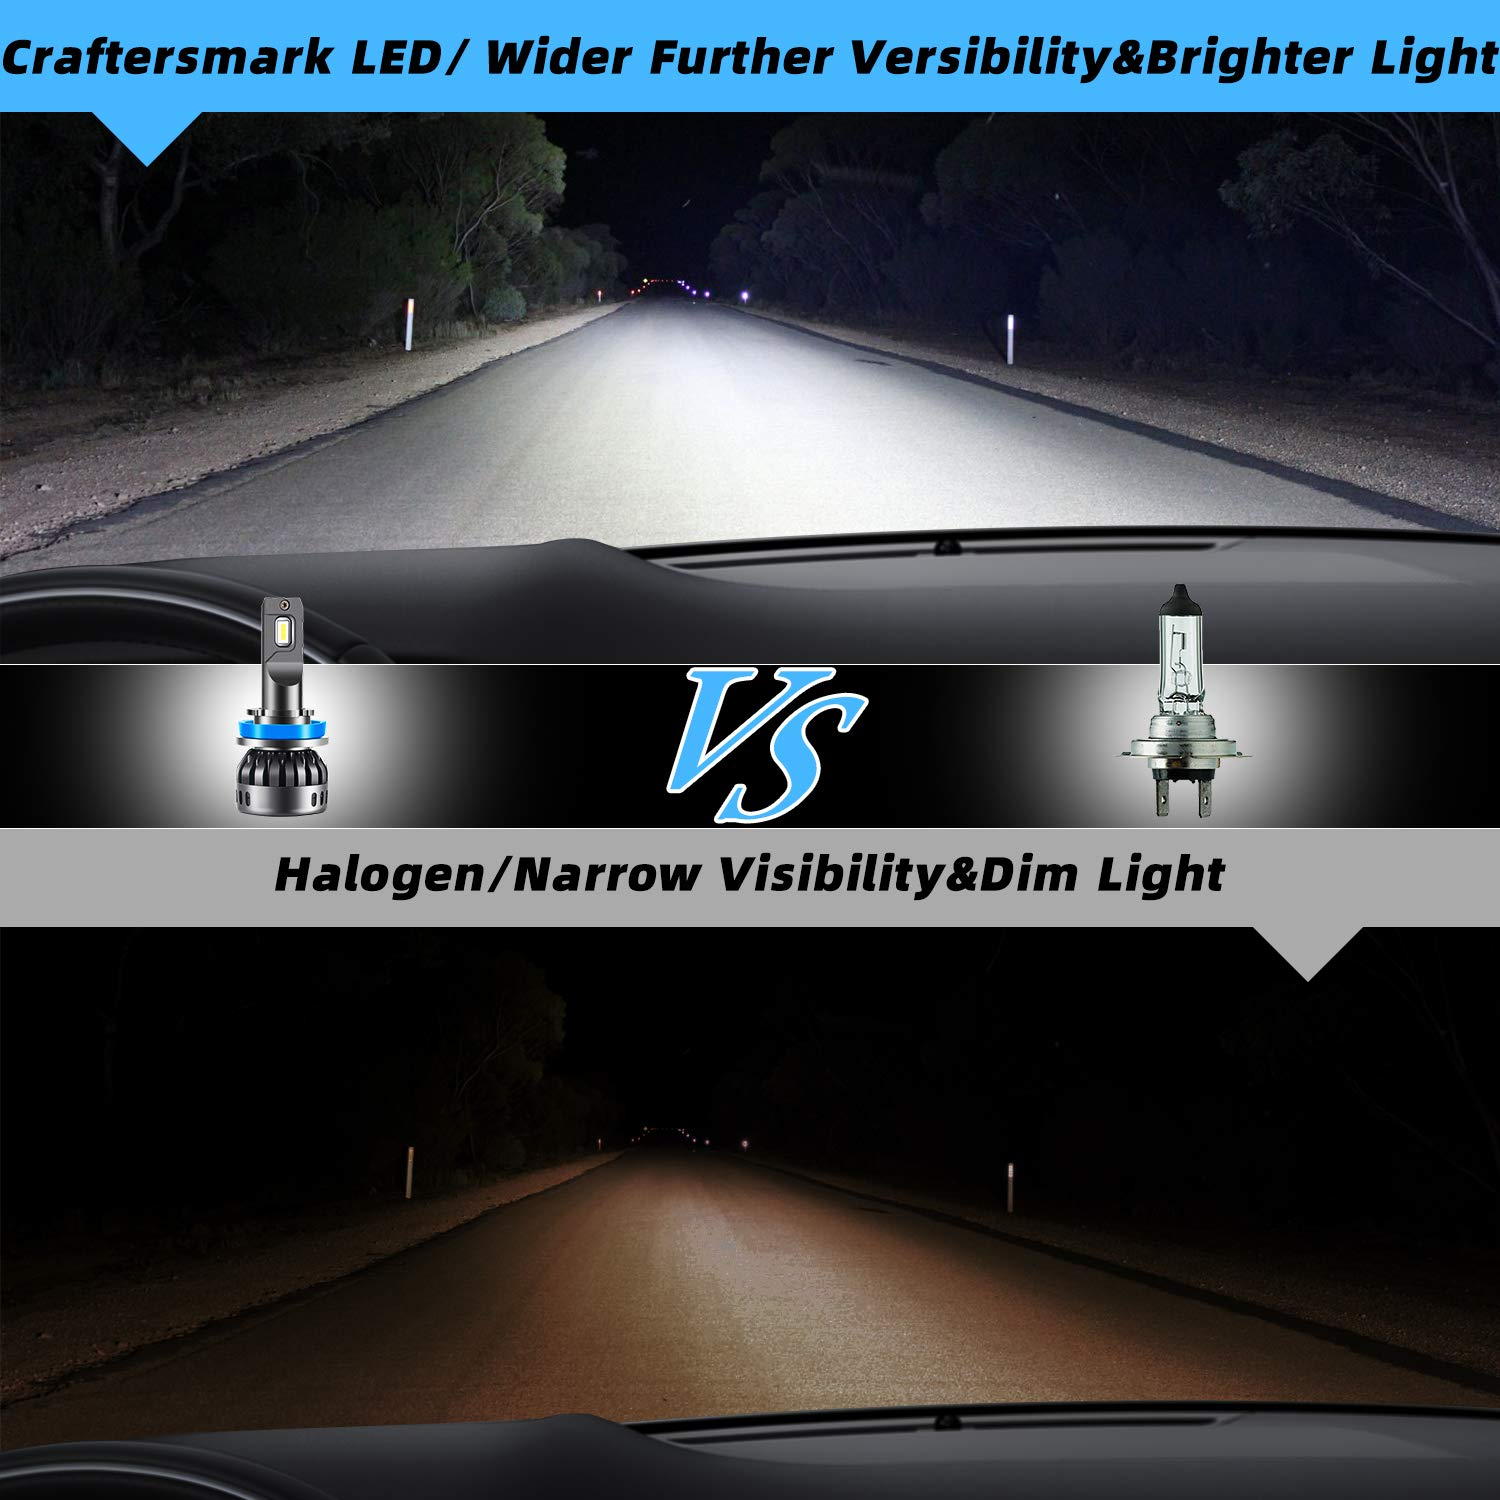 H11 LED Headlight Bulb, Craftersmark Super Bright H11/H8/H9 Headlight Bulbs with Cooling Fan, Waterproof LED Headlight 12,000lm 6000K 60W Cool White